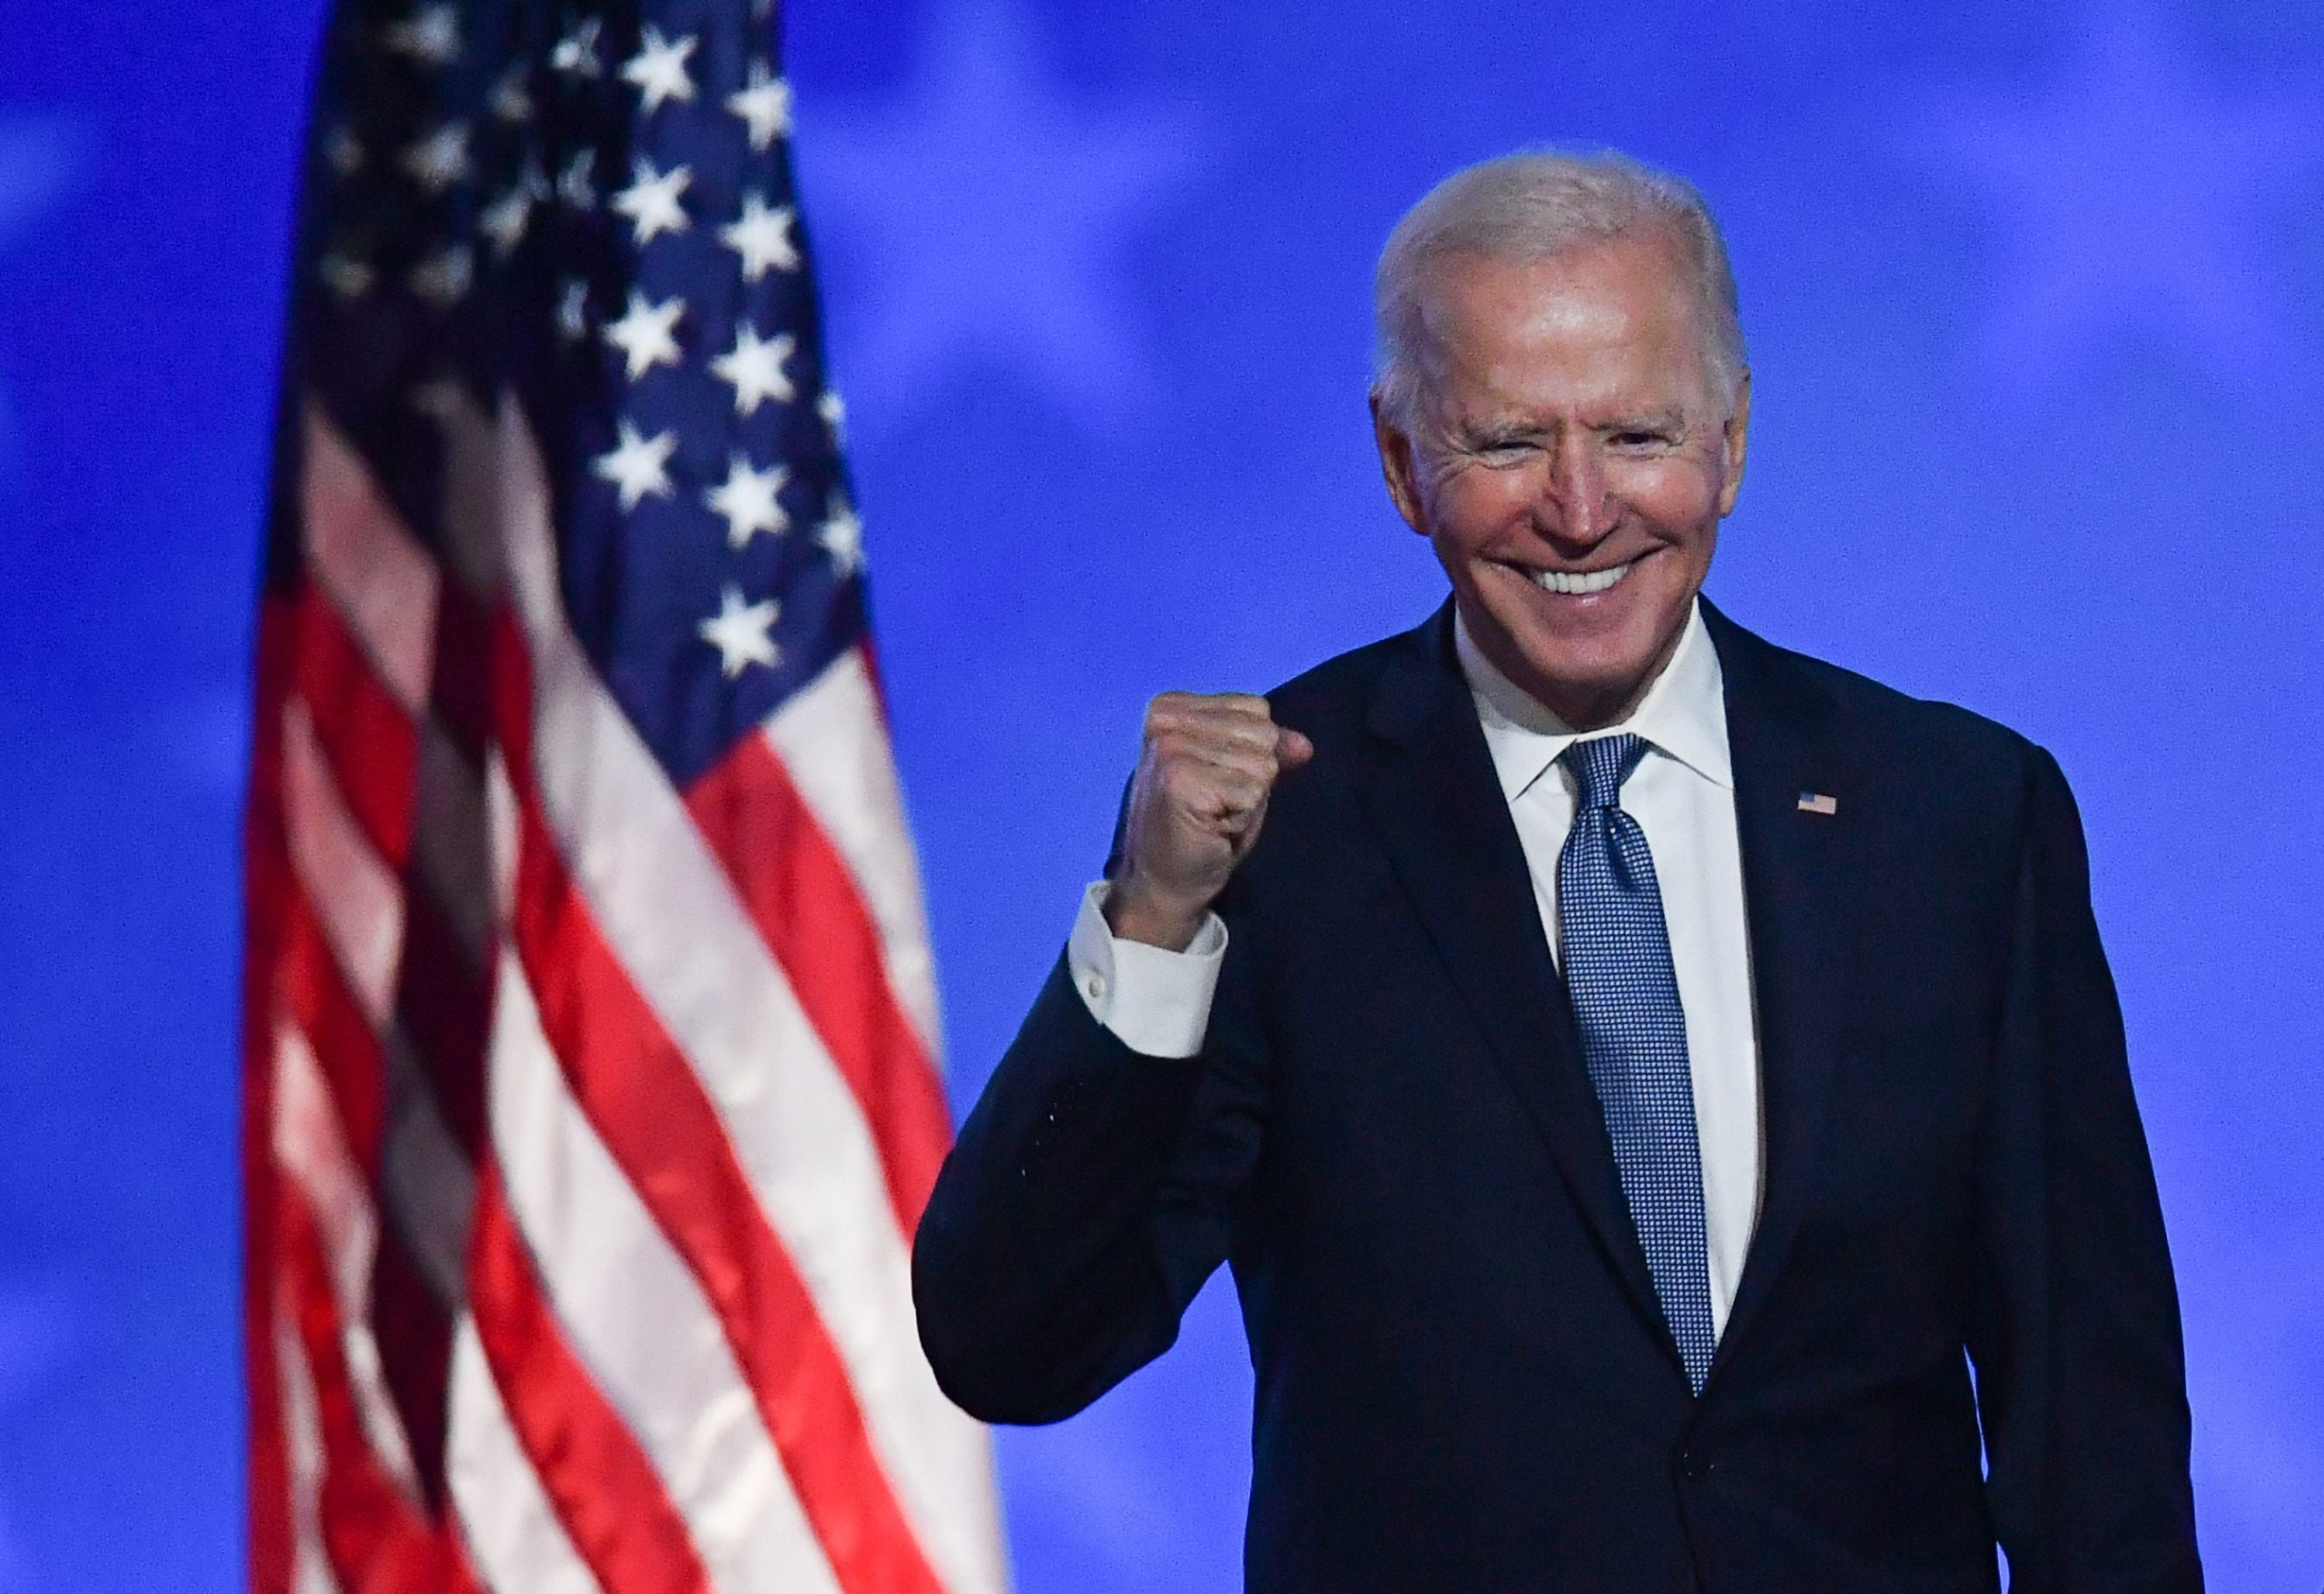 What does the Biden win mean?